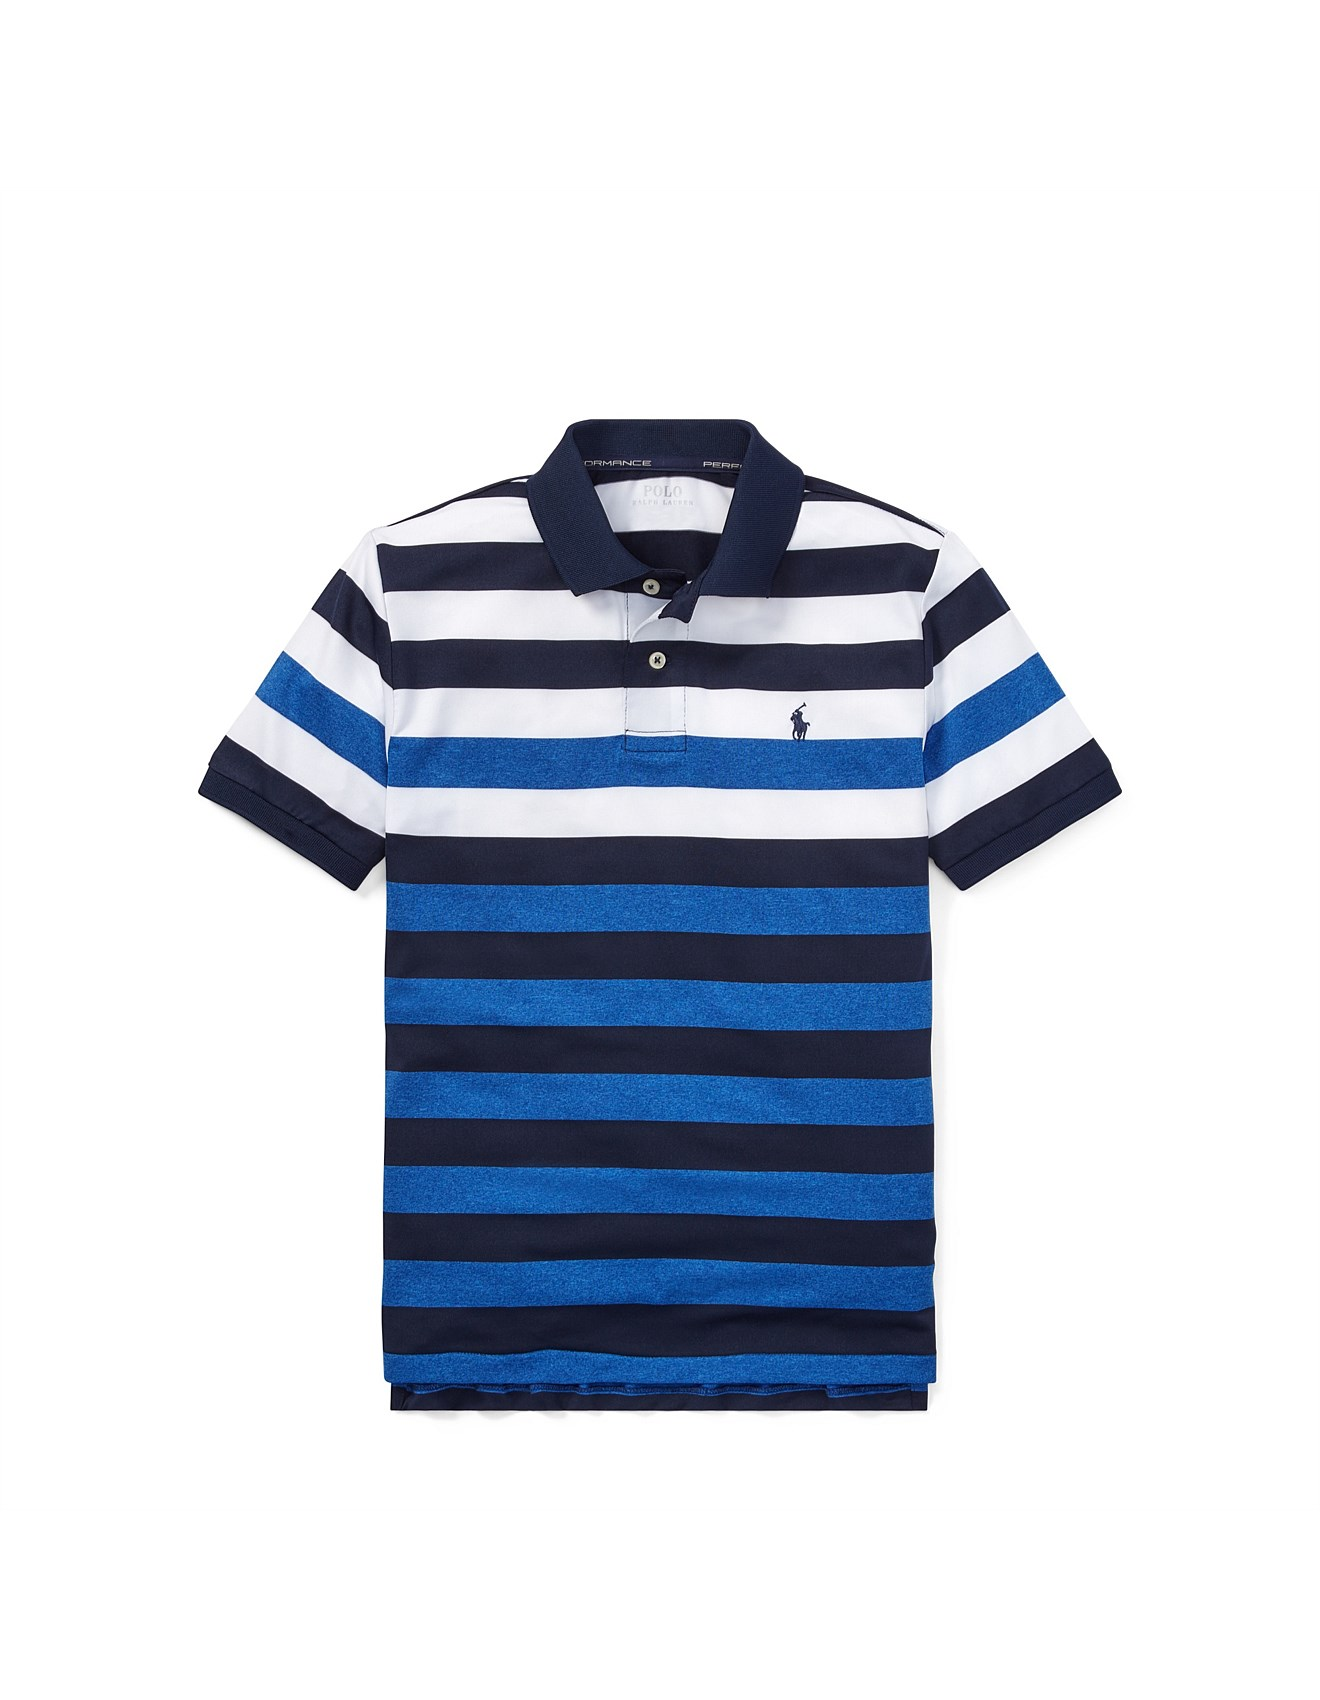 8605cb4833 Striped Performance Lisle Polo (S-XL)